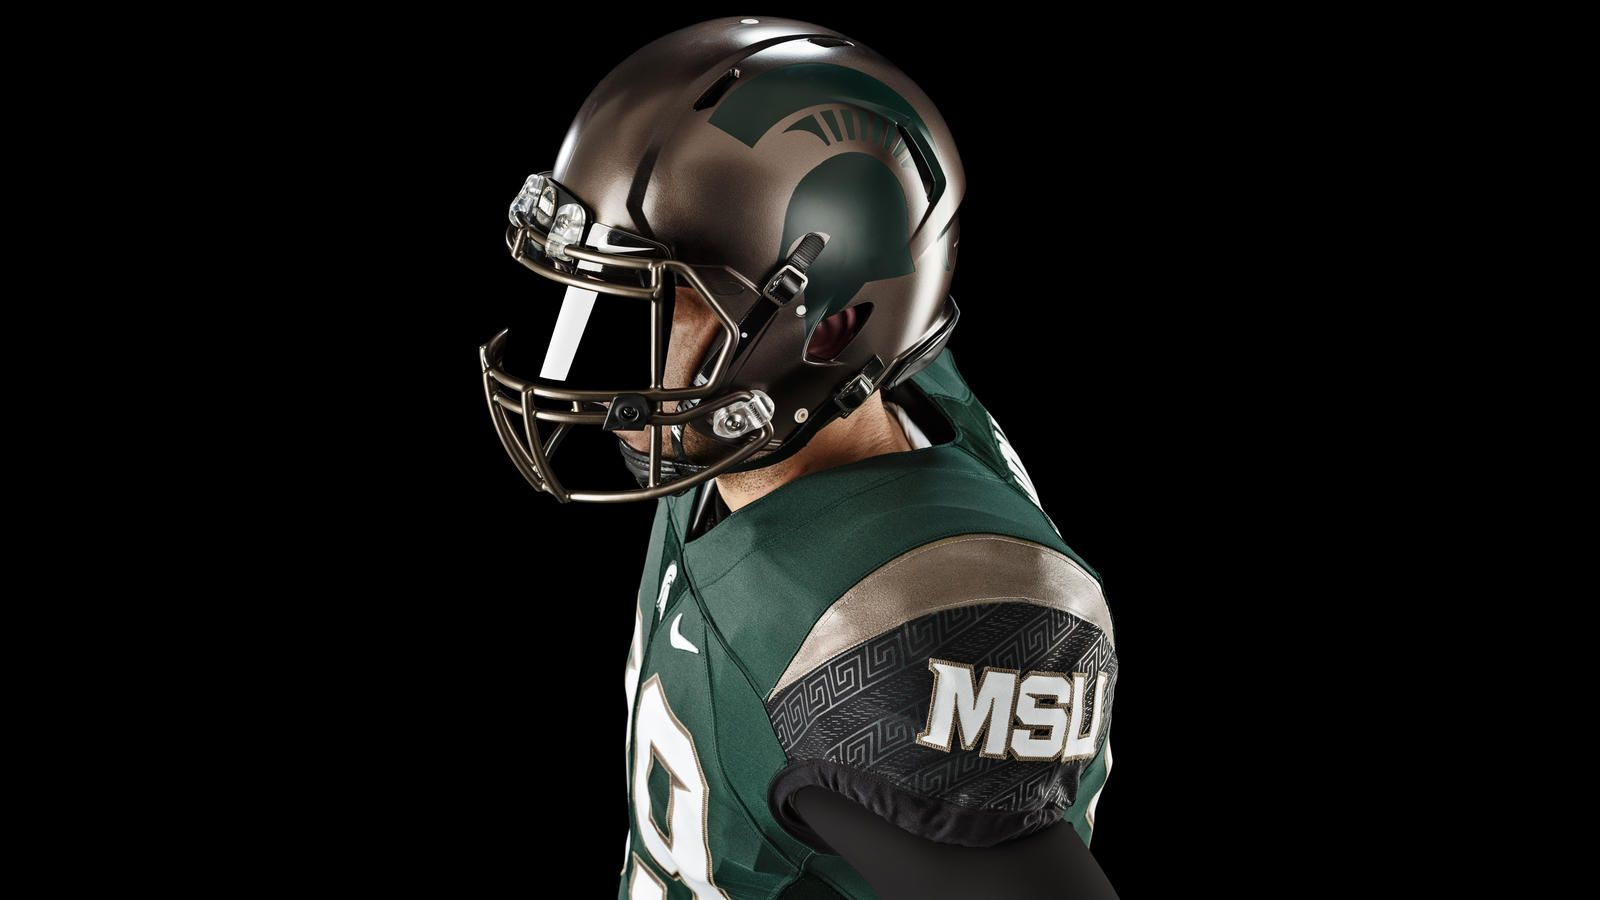 Michigan State Football Updates Nike Uniform Design Michigan State Football College Football Uniforms Football